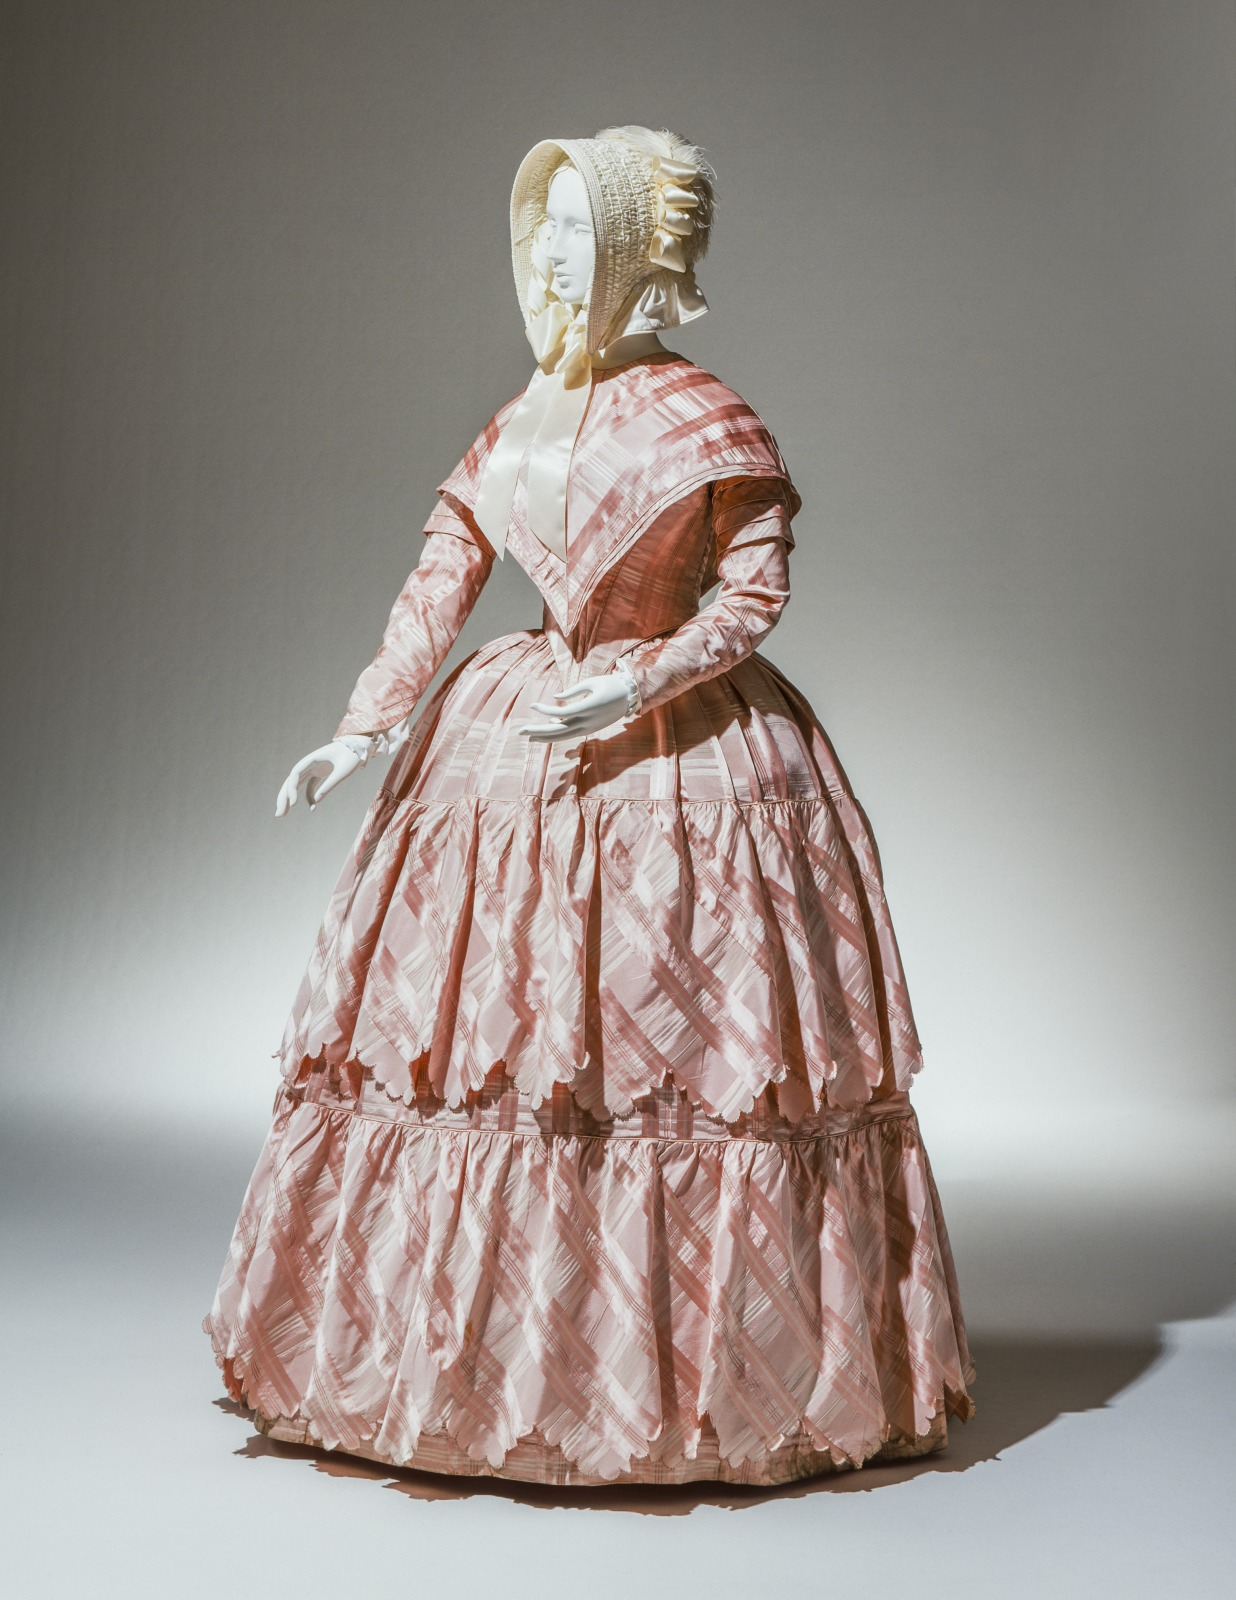 Ensemble: Bodice, Skirt, Cape, Two Sleeves, and Bow with Streamers